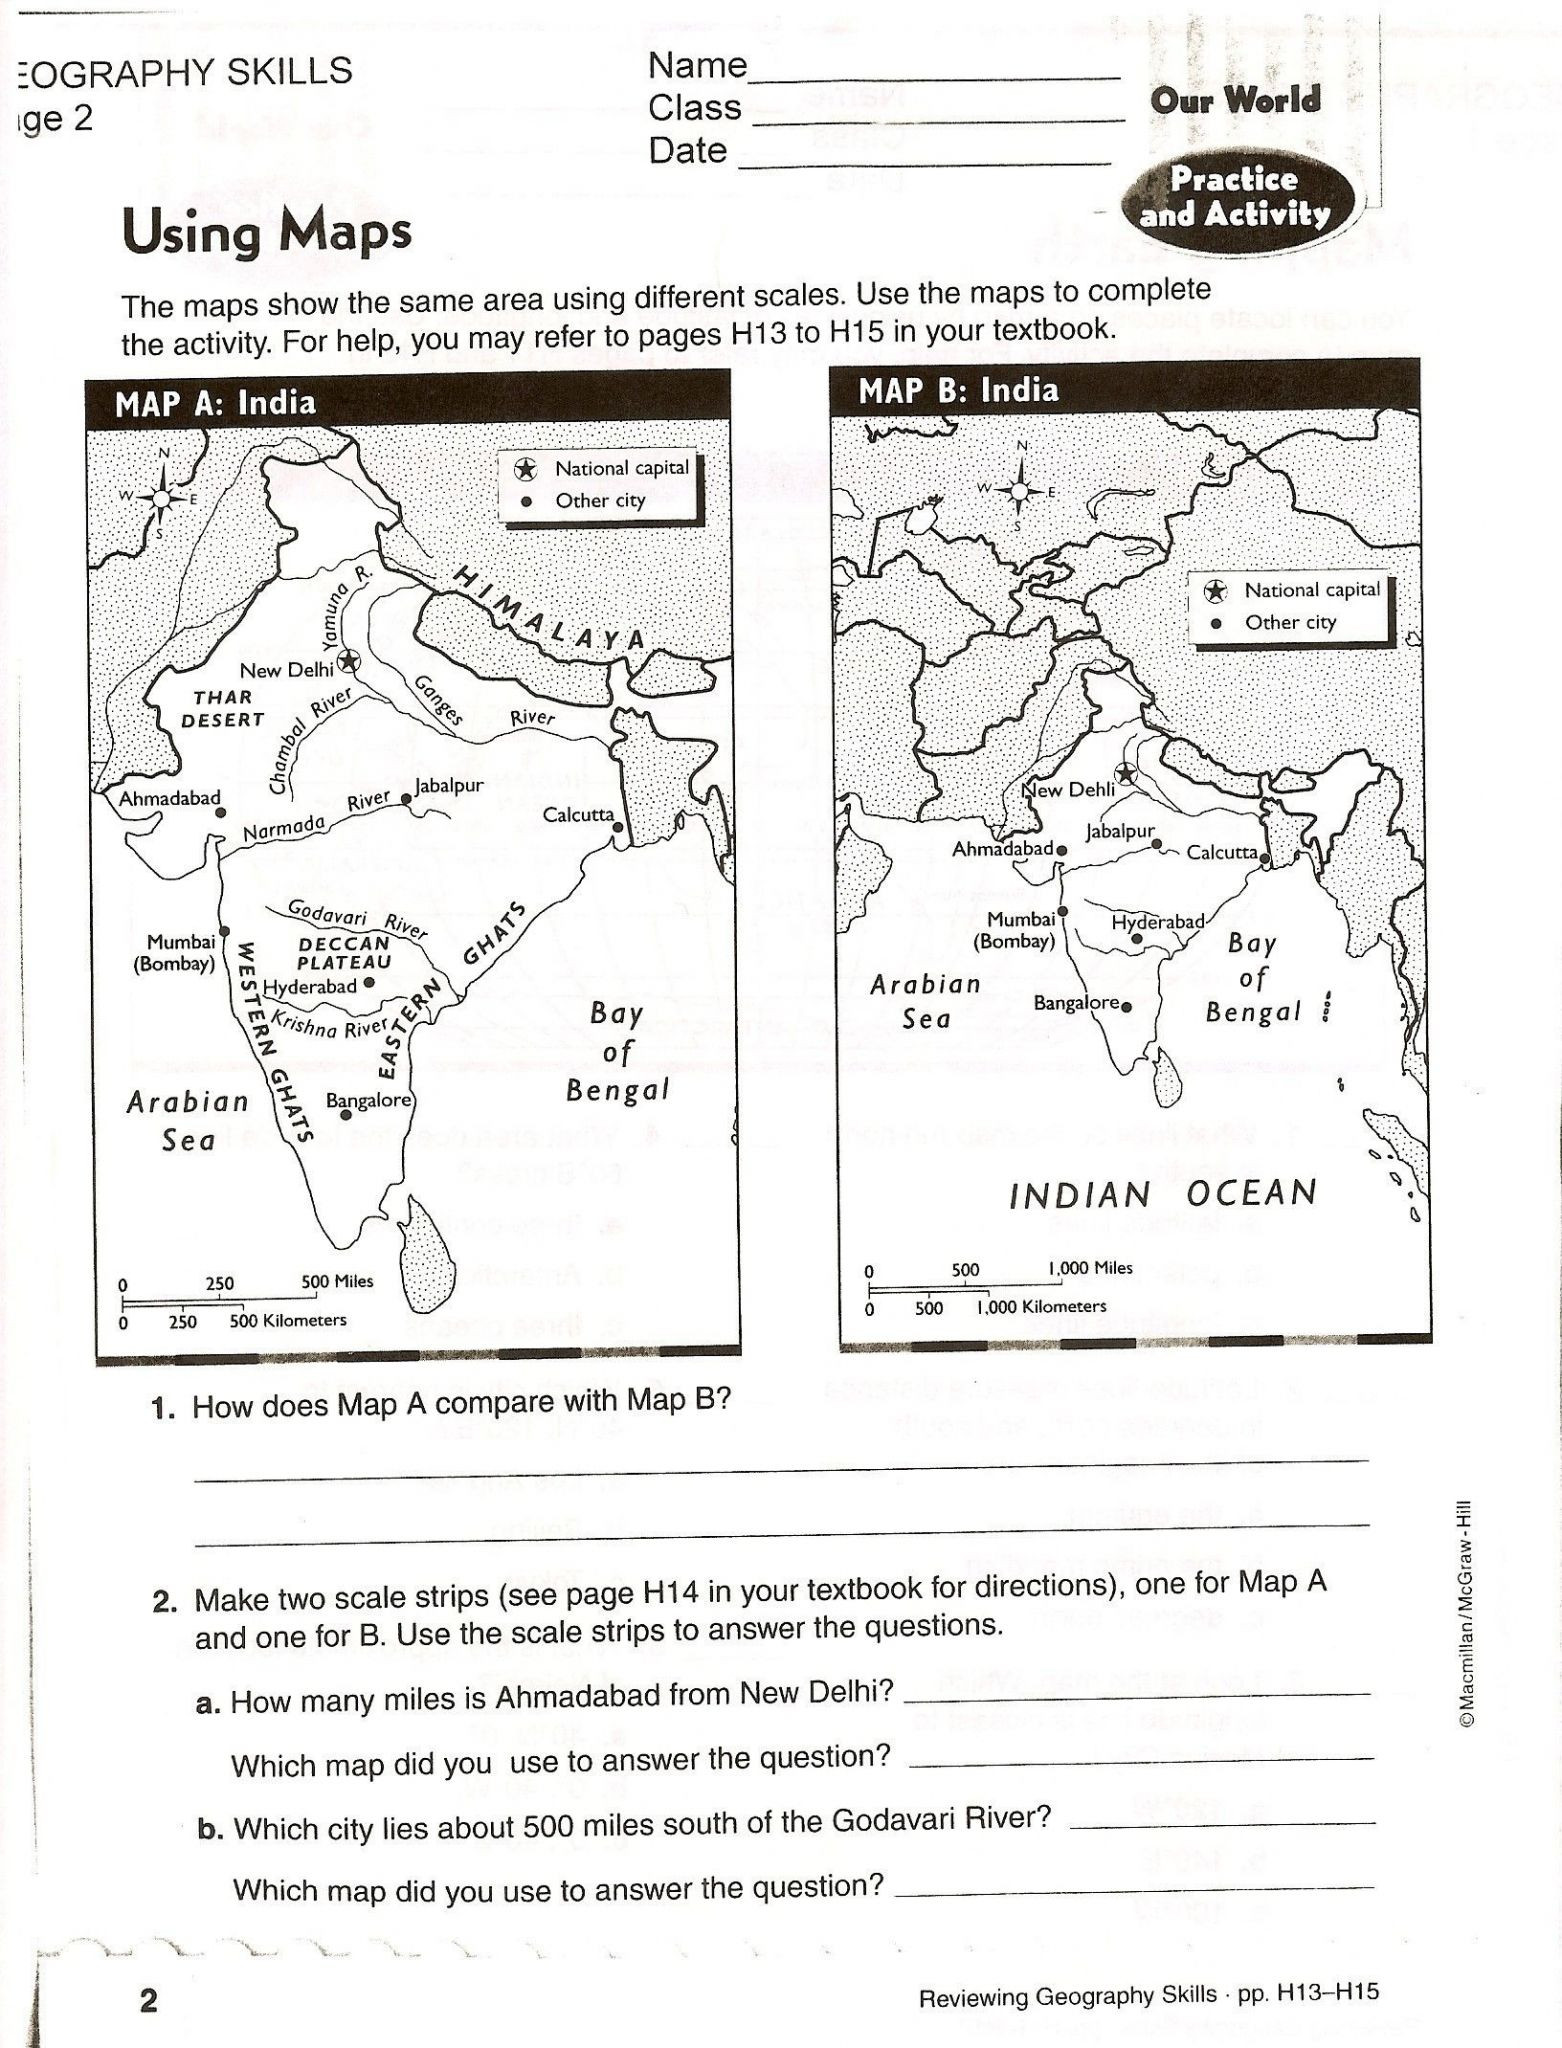 Map Skills Worksheets 3rd Grade All About Maps and Globes Worksheet